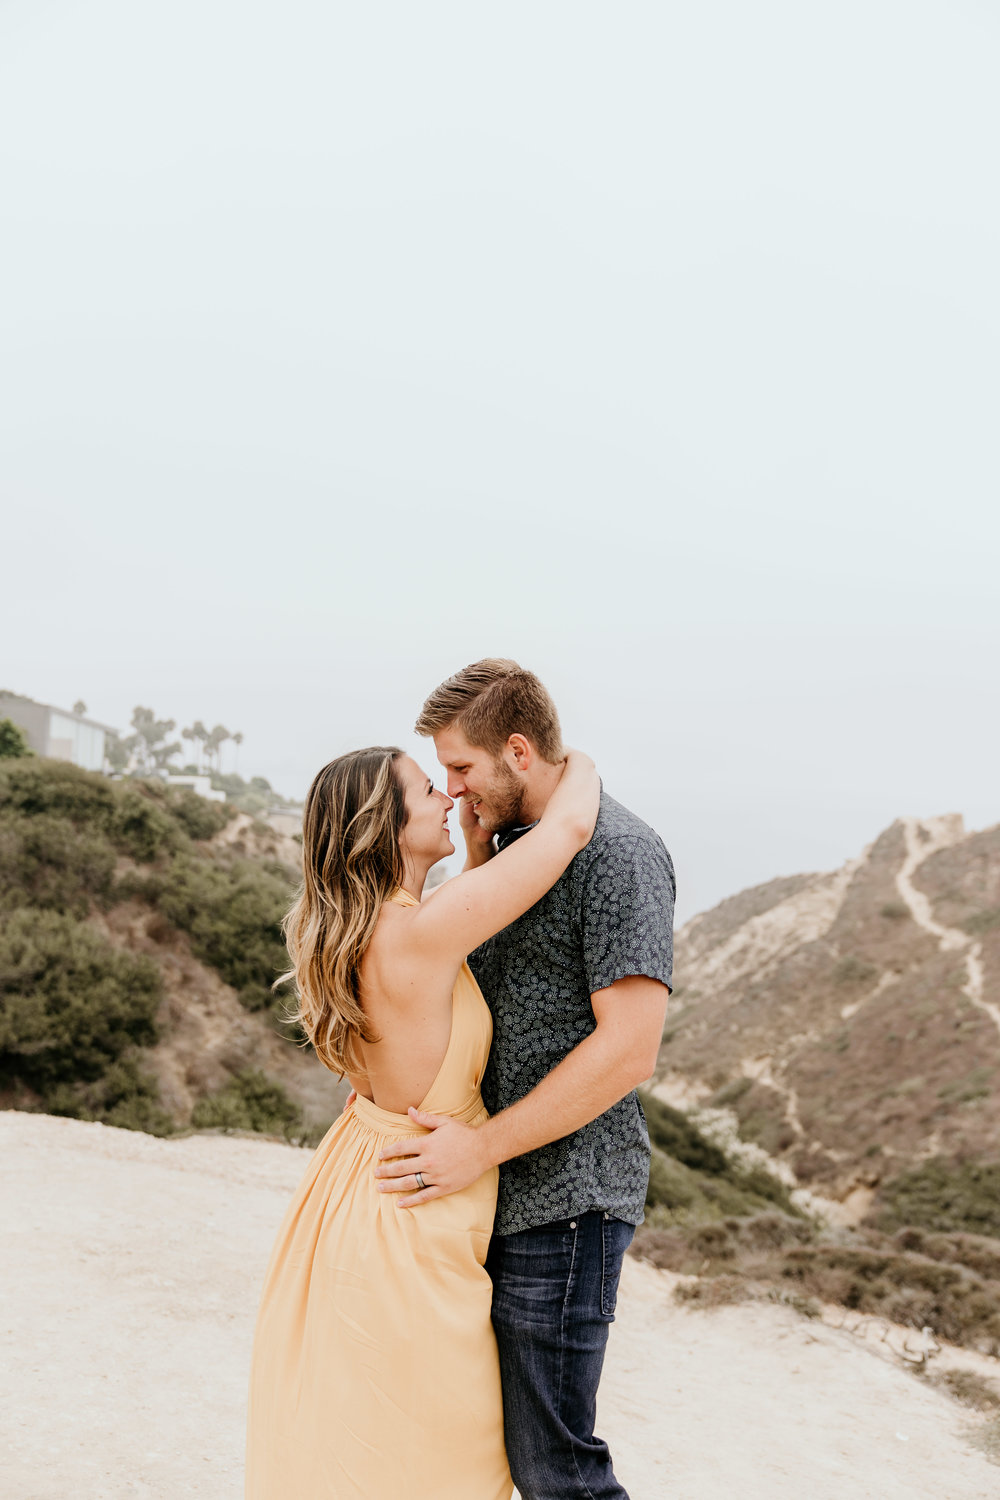 La Jolla Ho Chi Mihn Trail San Diego Couples Photography